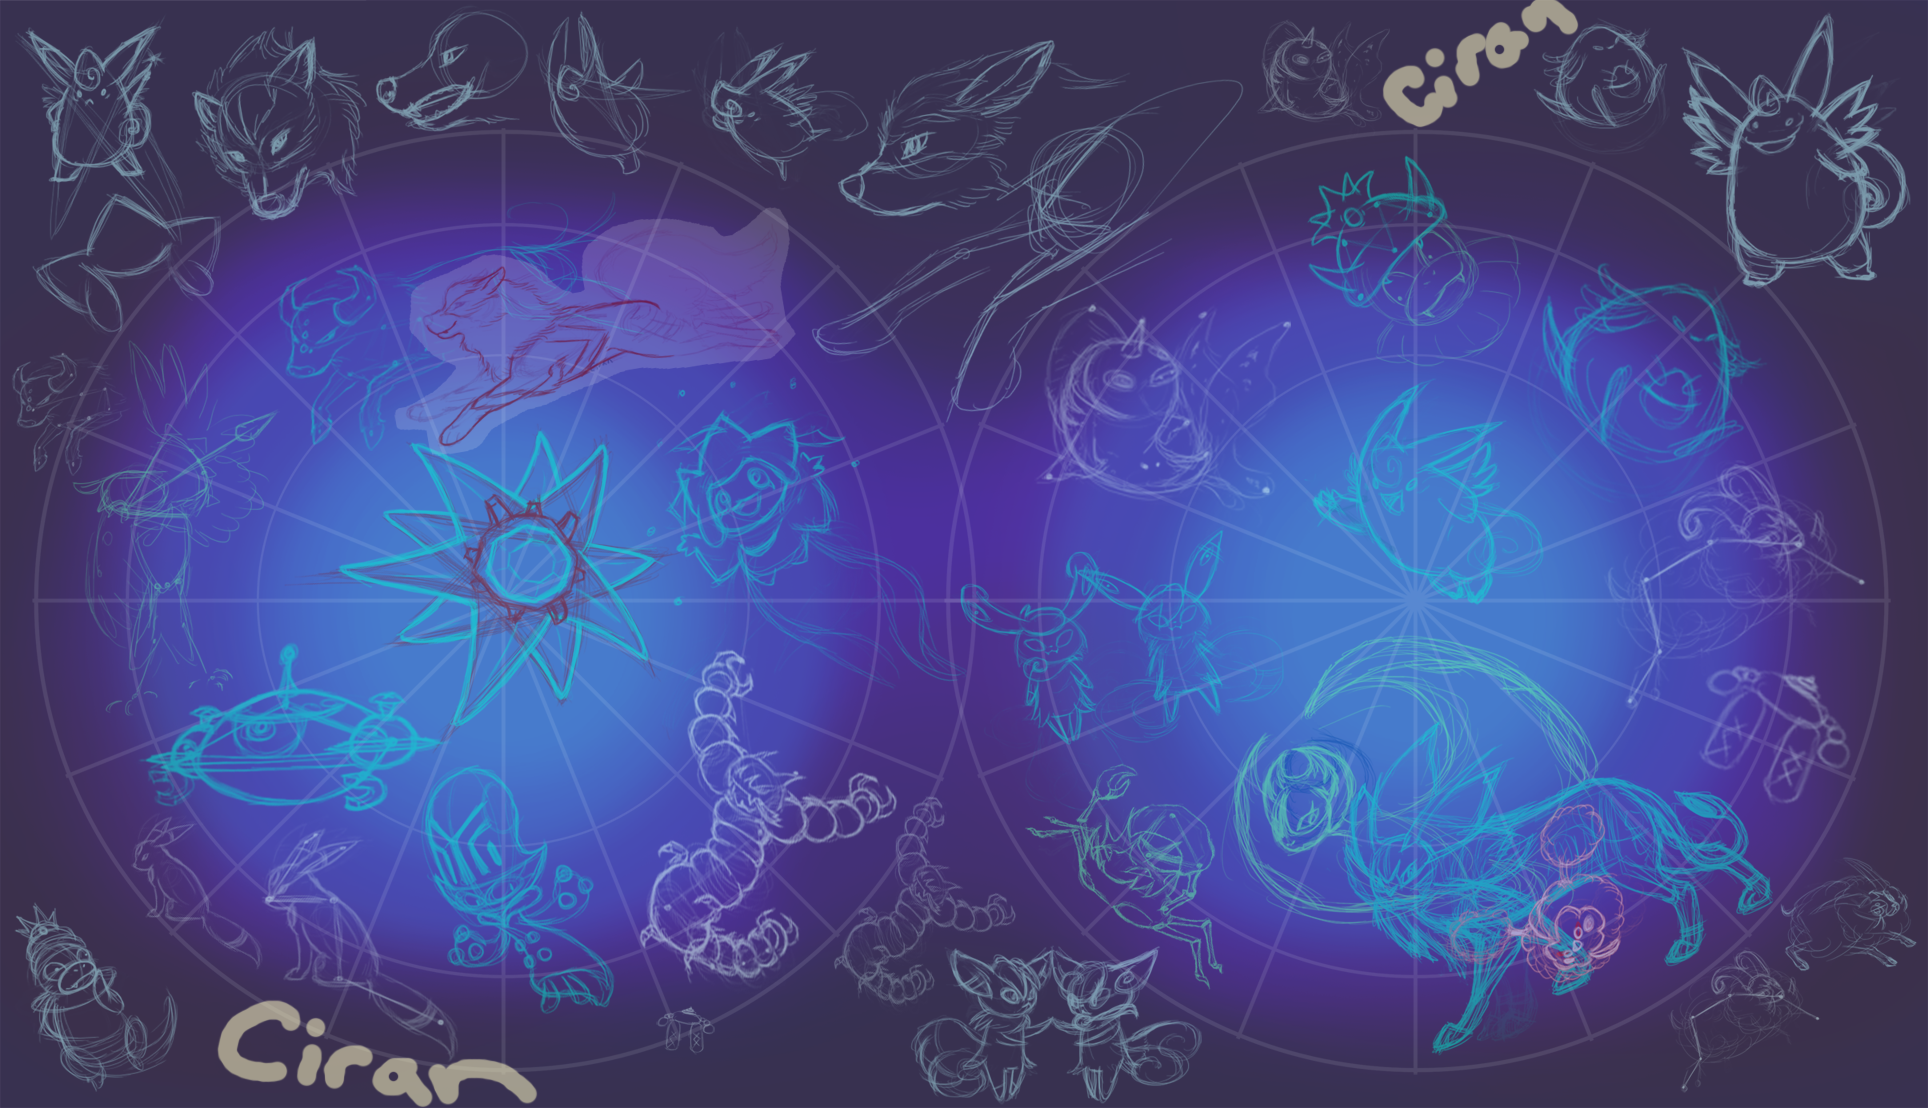 CelestialBeings_Resize-Sketches.png